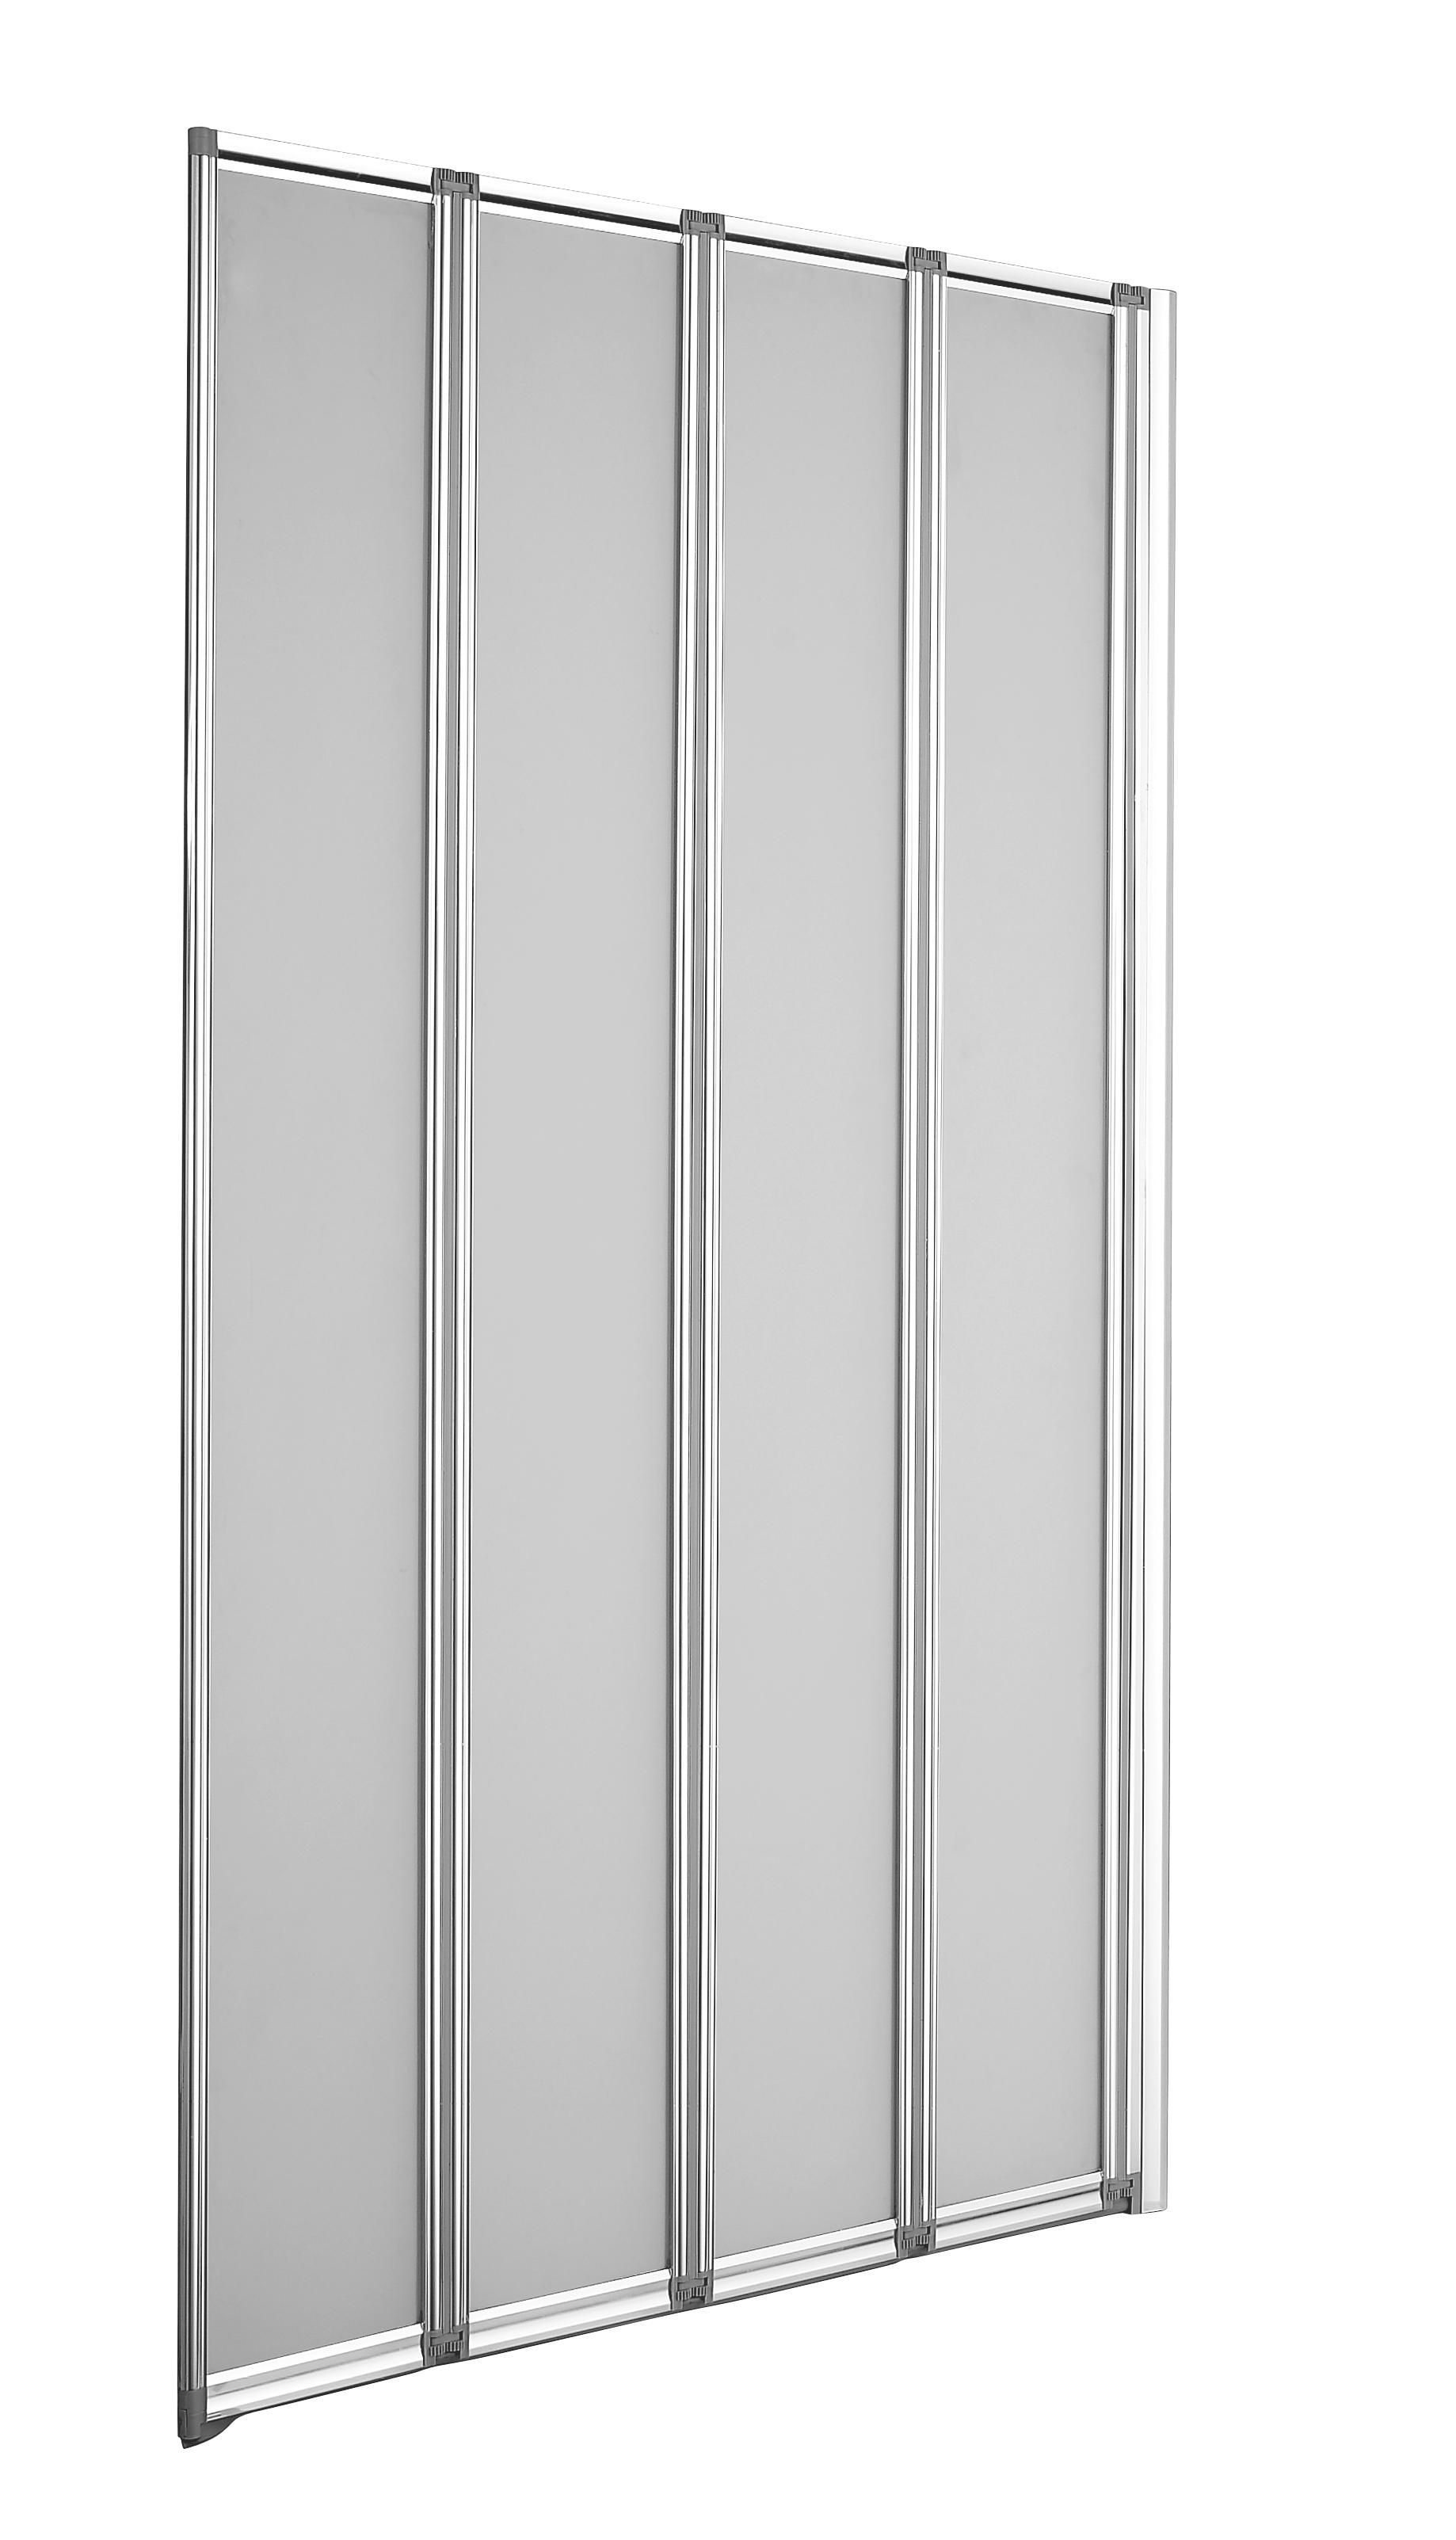 Nile Straight 4 Panel Folding Bath Screen W 840mm